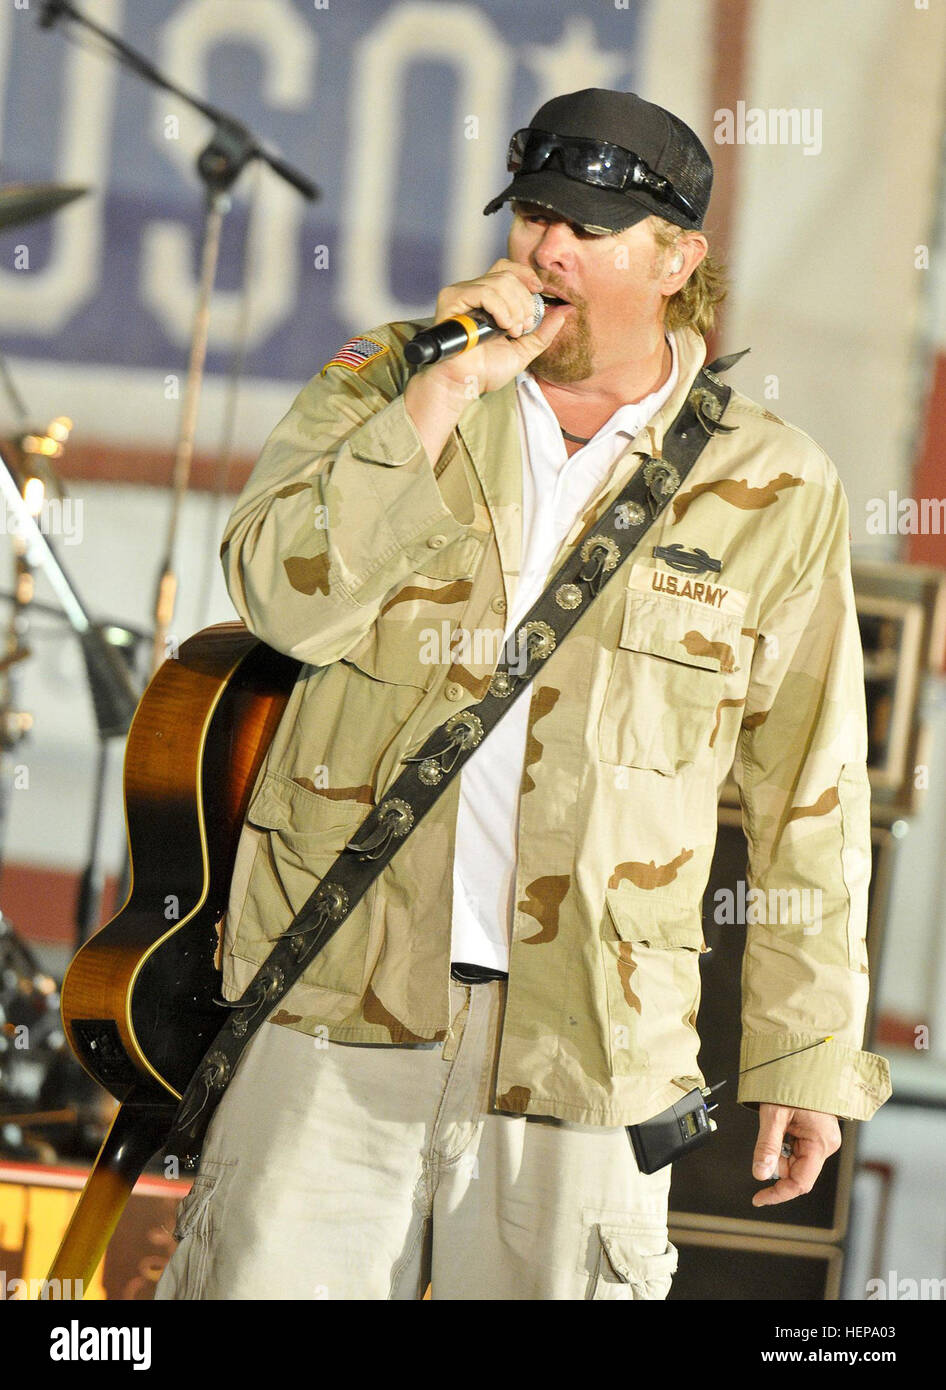 621bd39bc37cb Country music star Toby Keith performs for U.S. Division-North service  members and civilians during a USO concert at Contingency Operating Base  Speicher